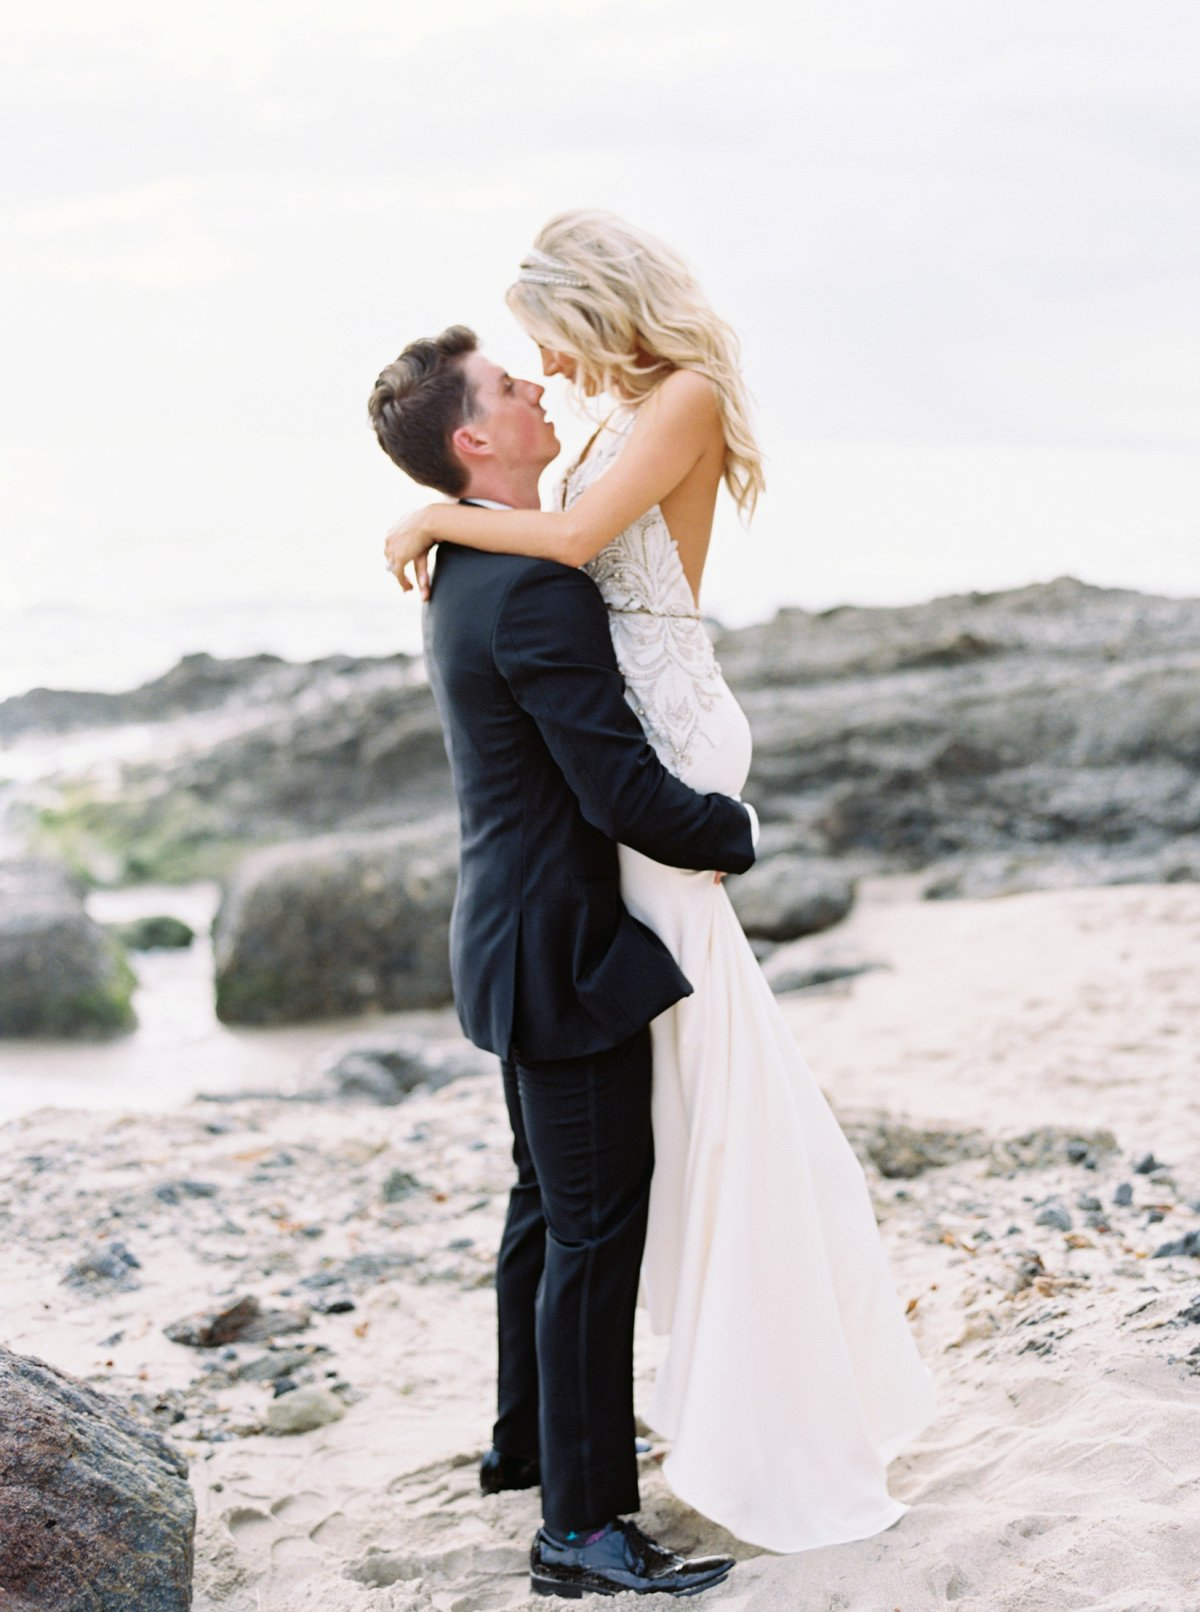 nicoleclareyphotography_evan+jeff_laguna beach_wedding_0019